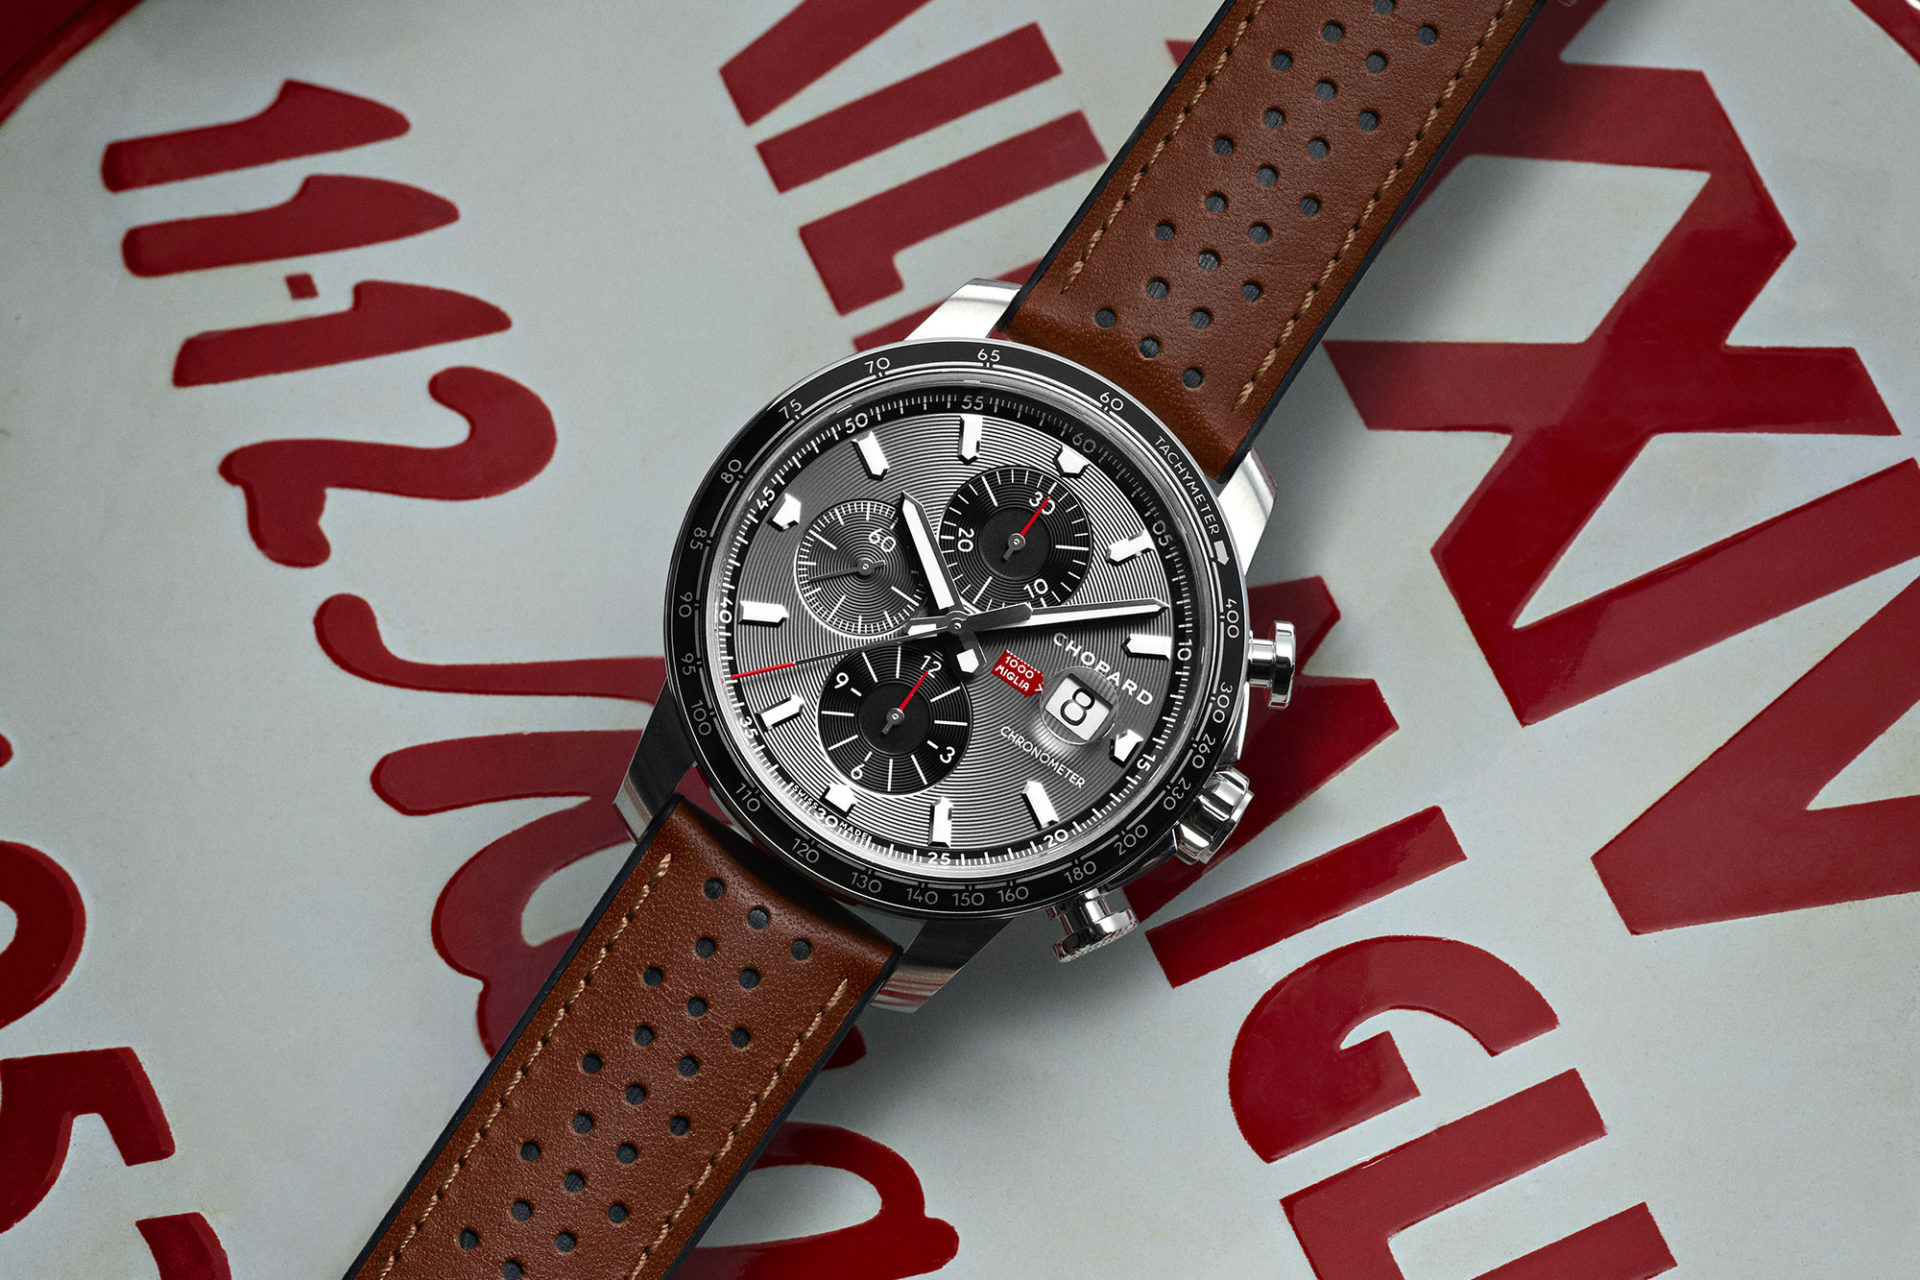 Chopard Mille Miglia Race Edition - Baselworld 2019